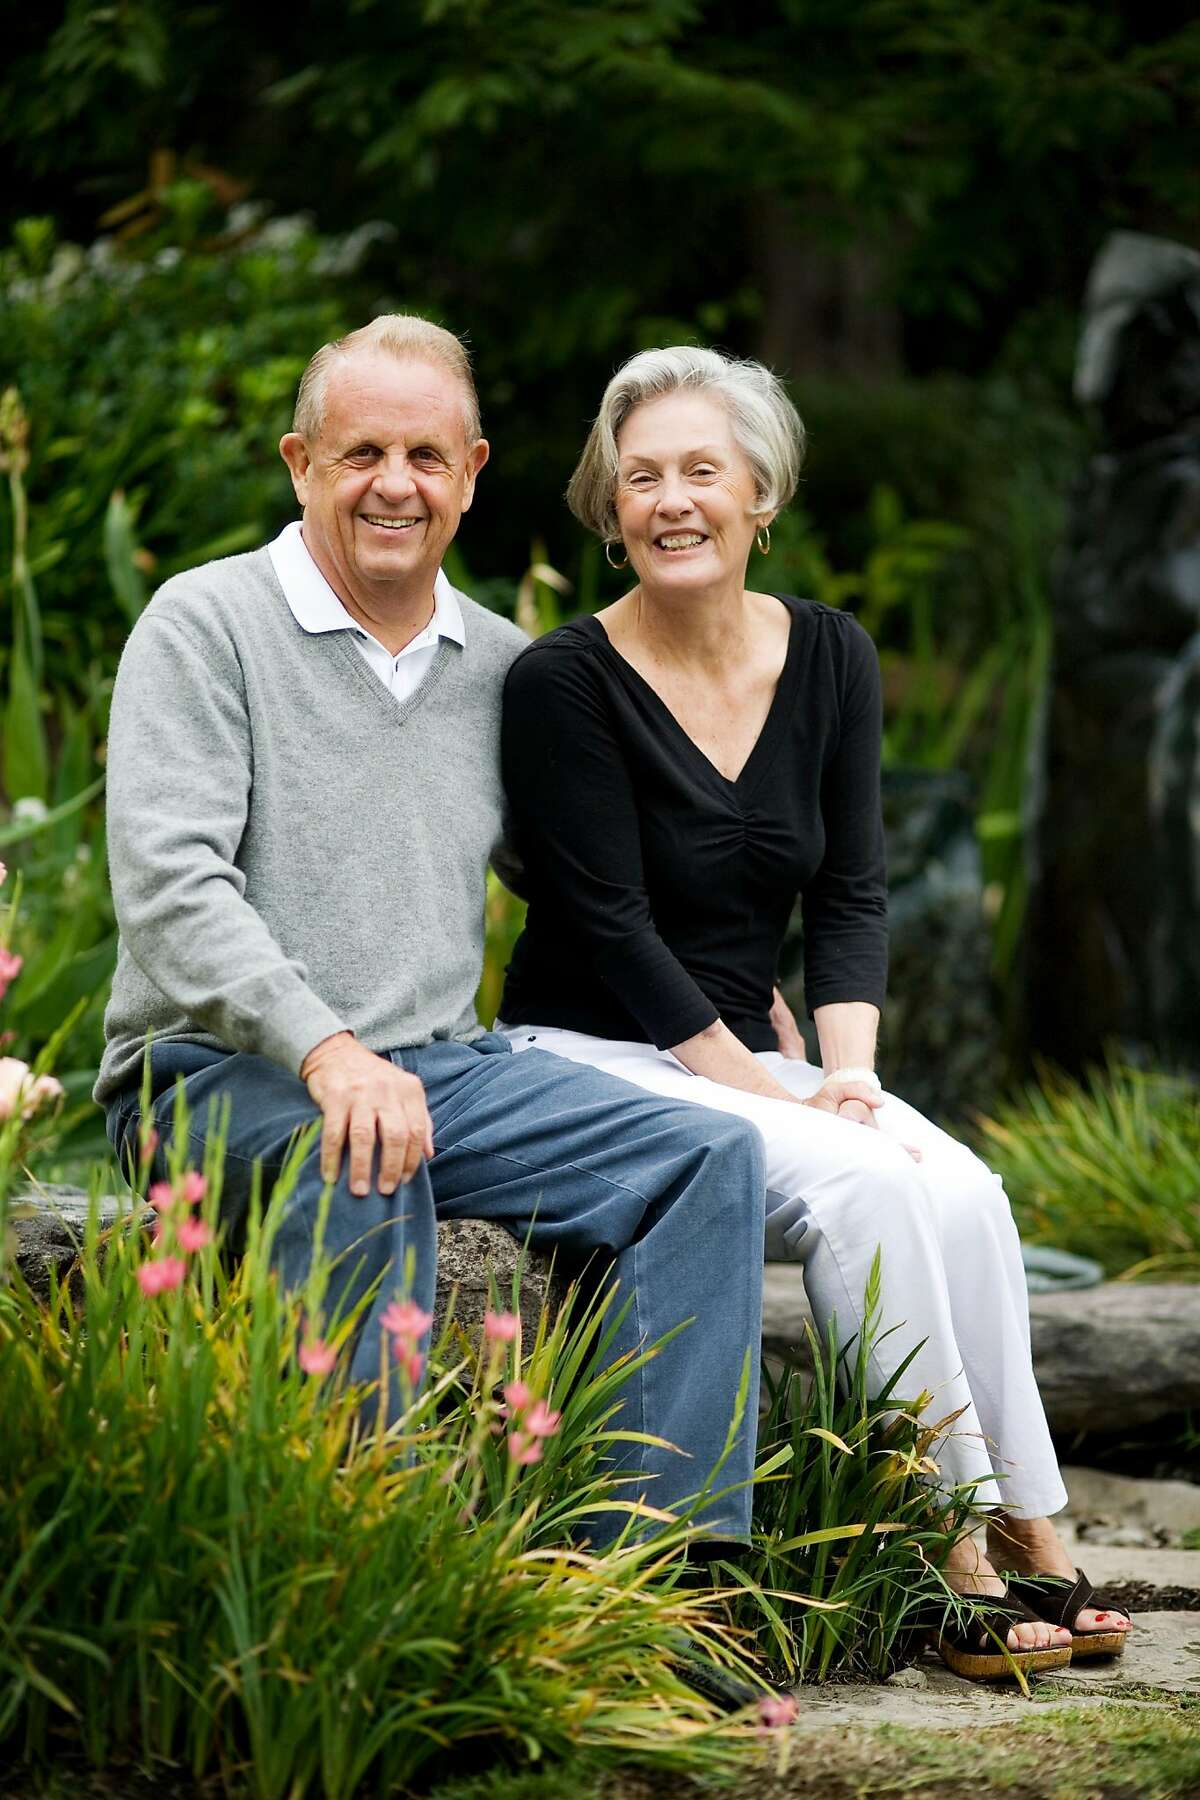 Vintner Dick Grace and his wife, Ann, of Grace Family Vineyards, in St. Helena, who created the first cult Cabernet, sit together near a koi pond in their backyard, on Monday, August 31, 2009. The Grace family has dedicated their life to nonprofit causes throughout Asia.